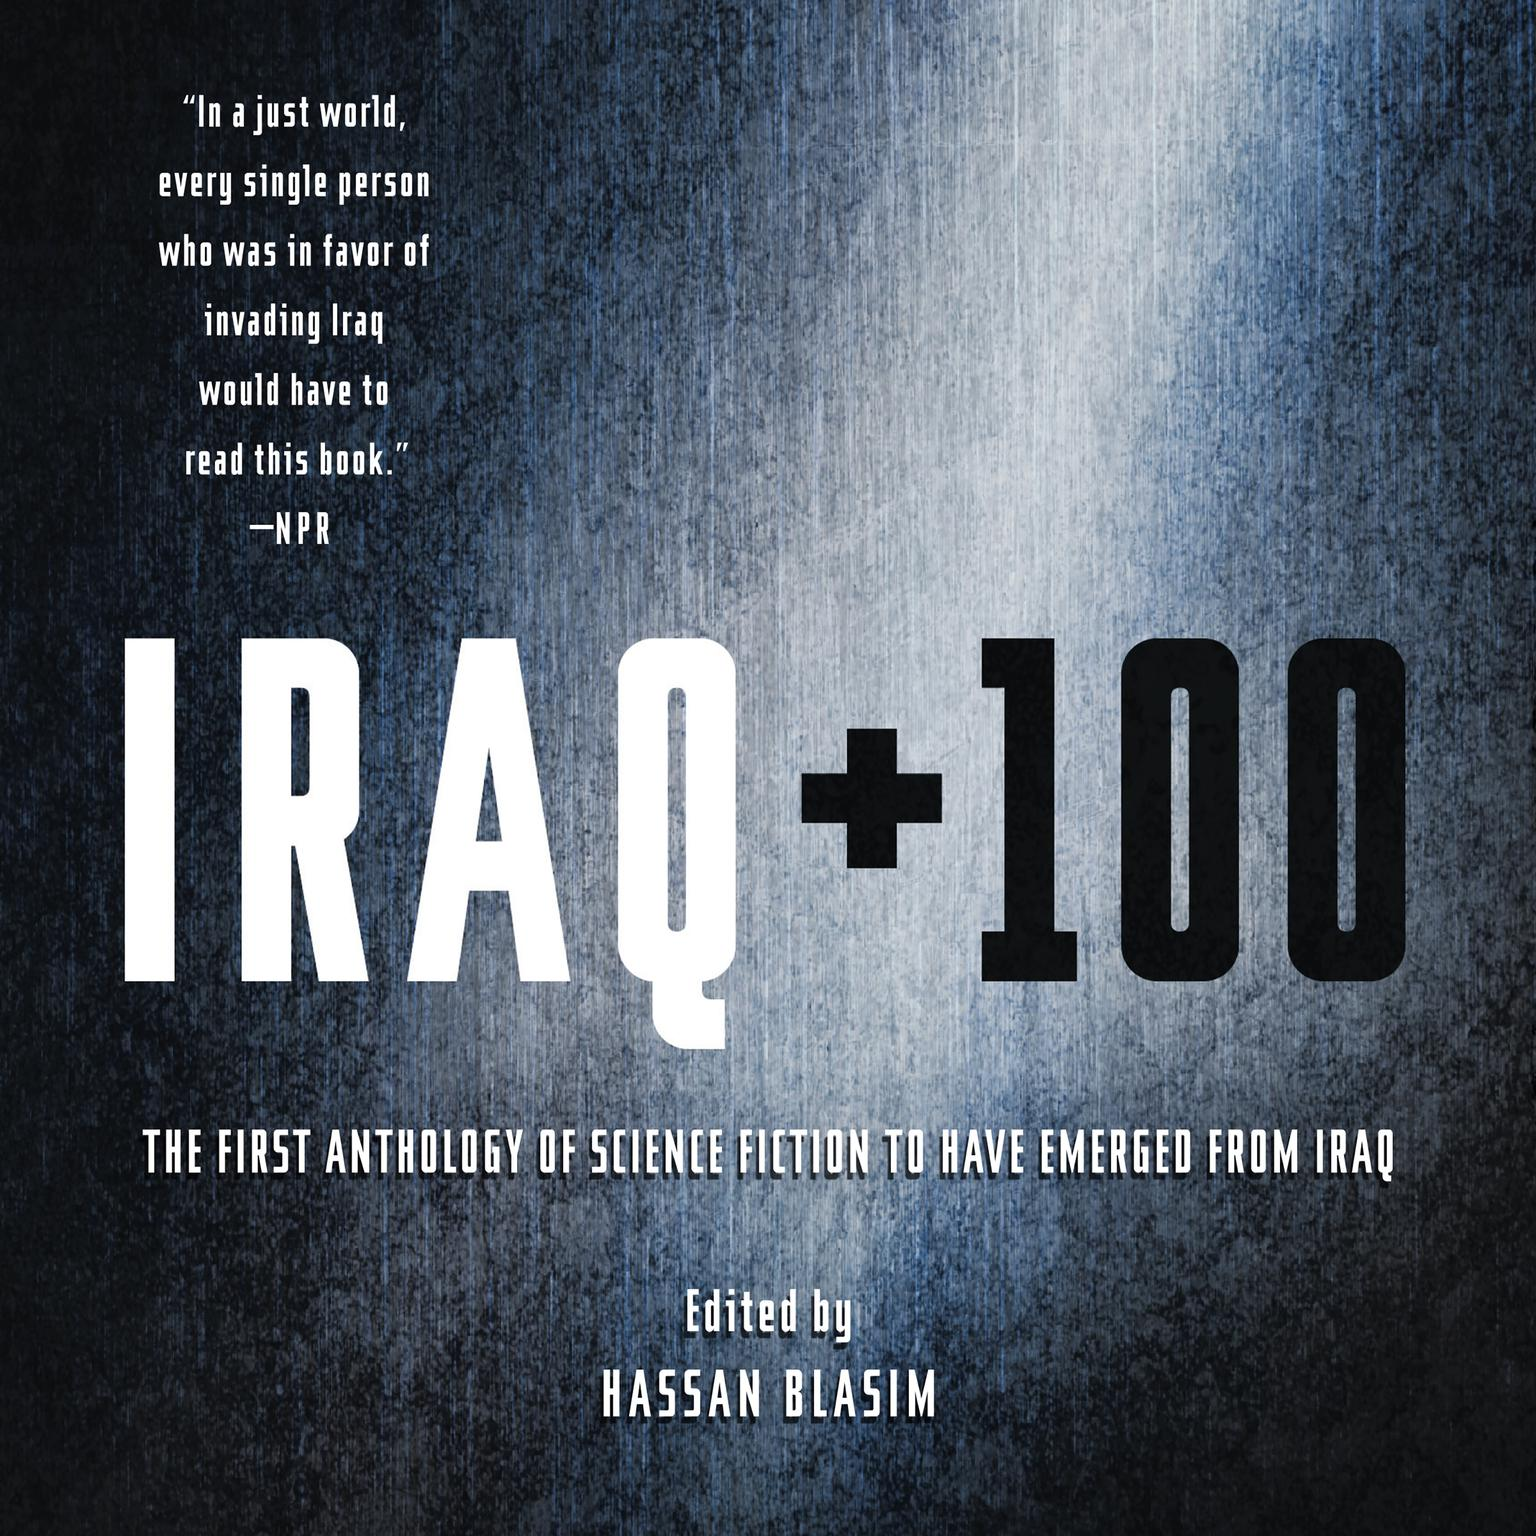 Iraq + 100: The First Anthology of Science Fiction to Have Emerged from Iraq Audiobook, by Hassan Blasim